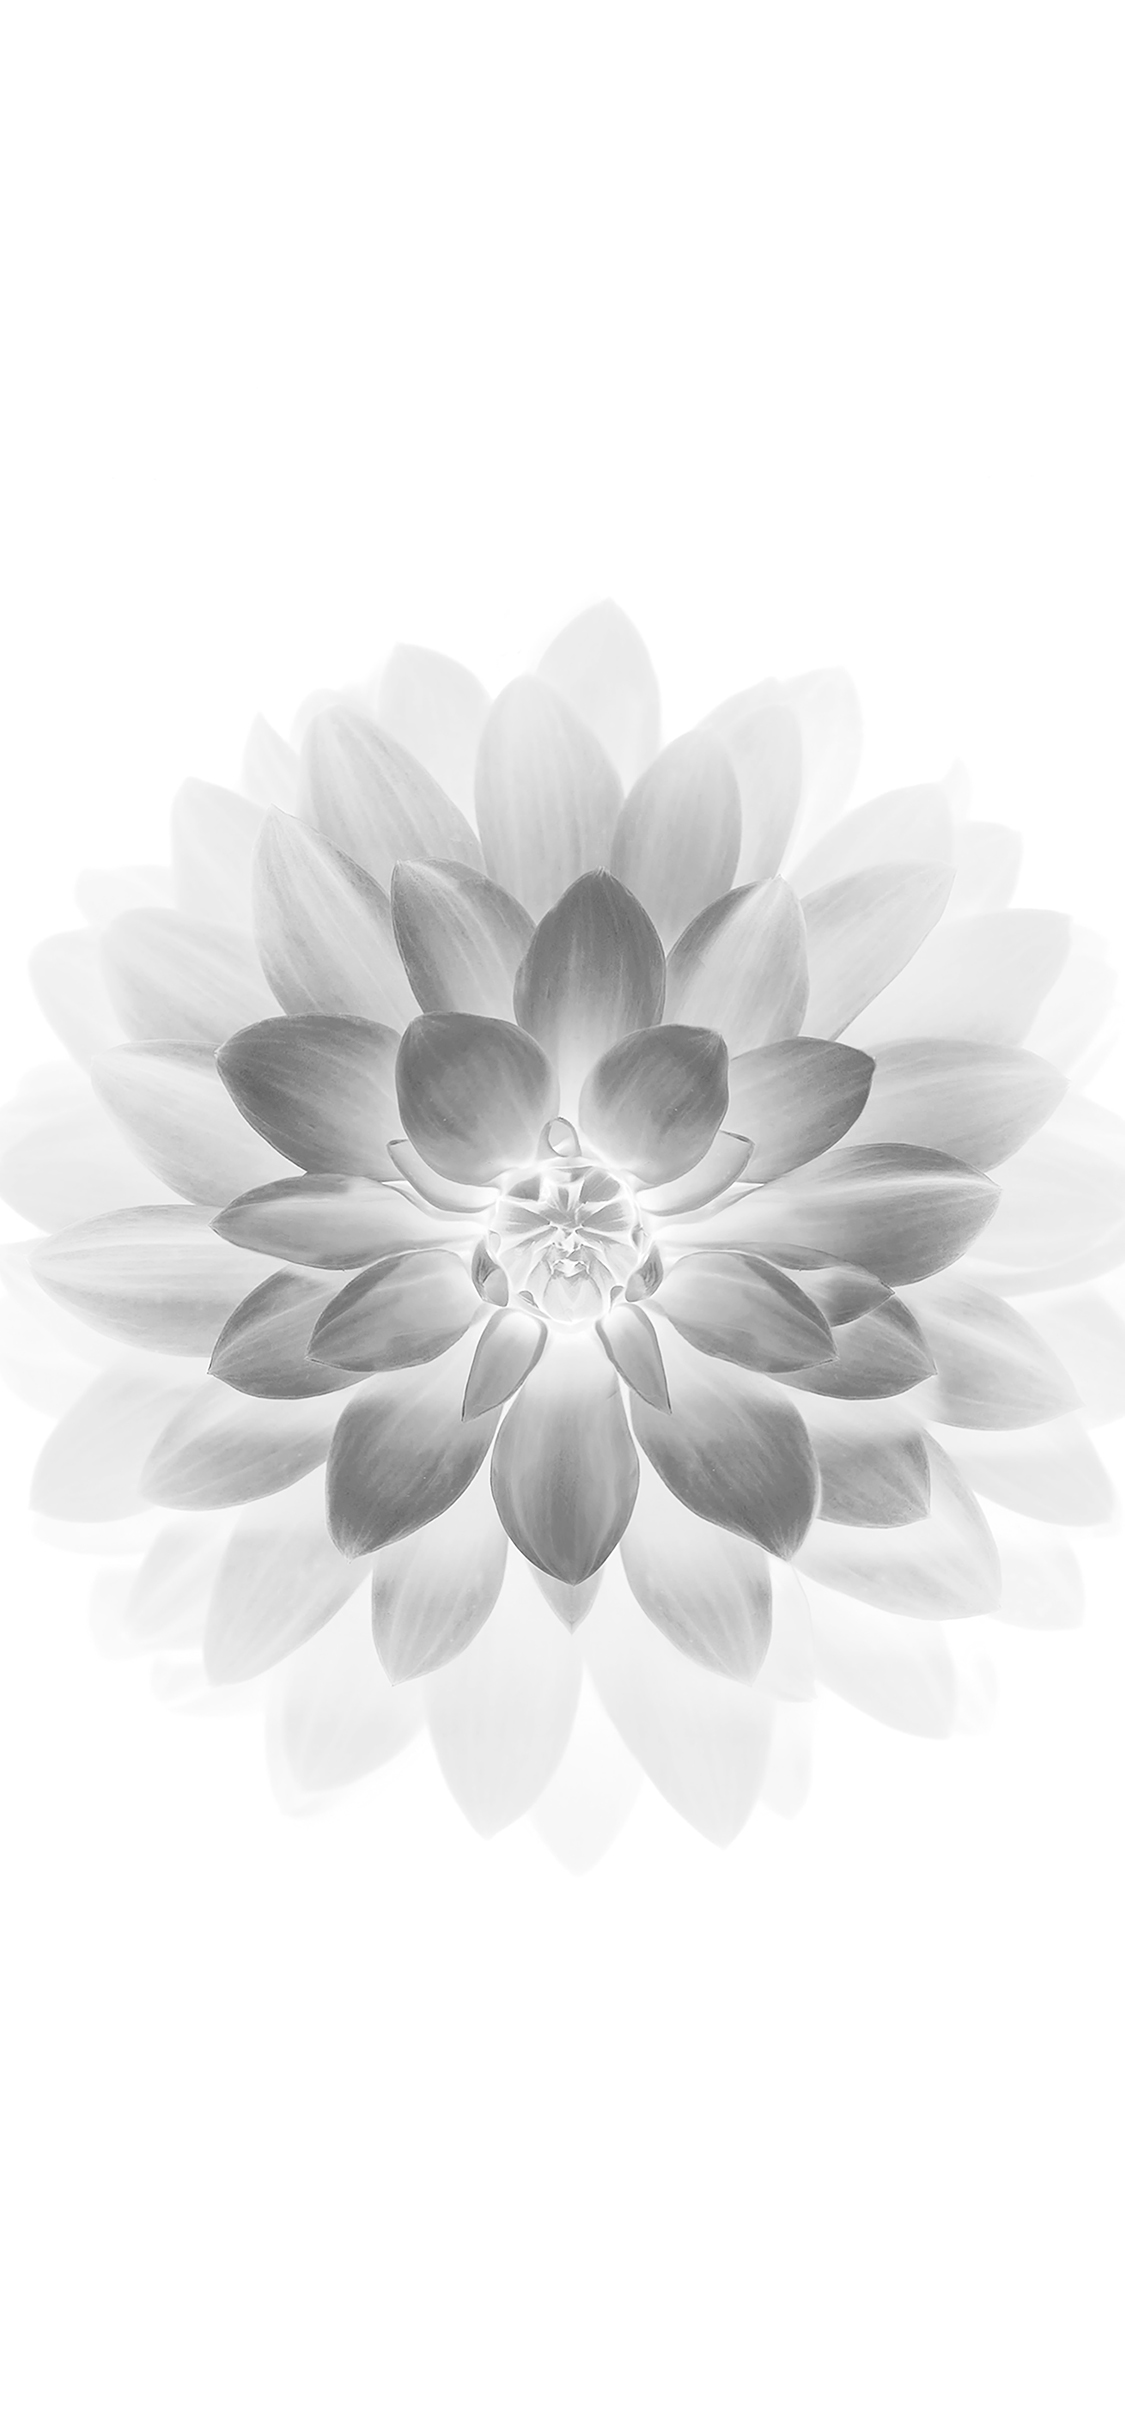 iPhoneXpapers.com-Apple-iPhone-wallpaper-ad78-apple-white-lotus-iphone6-plus-ios8-flower